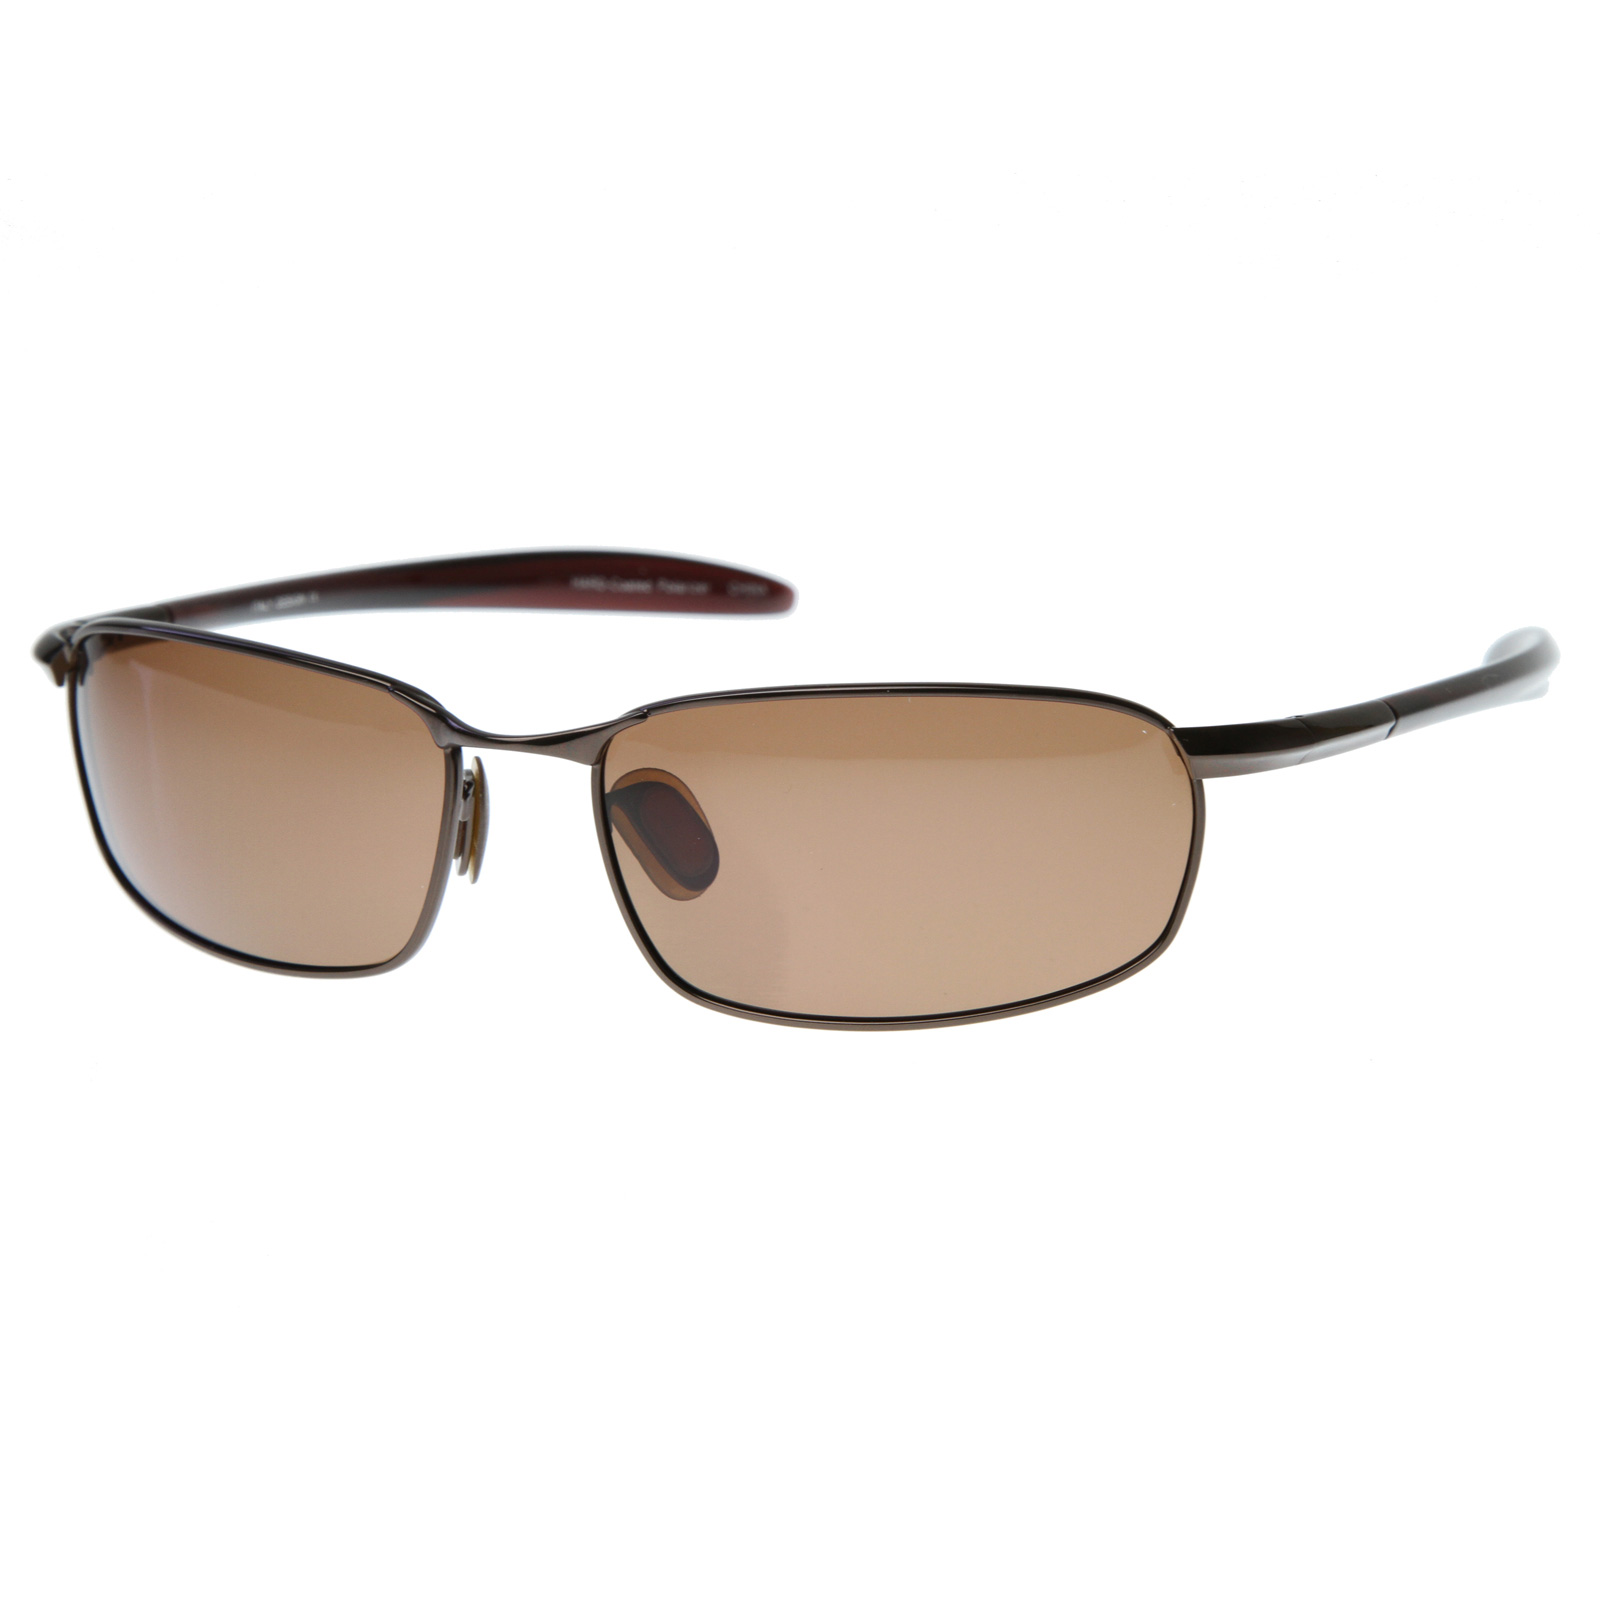 Mens Wire Frame Glasses : New Mens Sports Fishing Polarized Thin Metal Wire Square ...